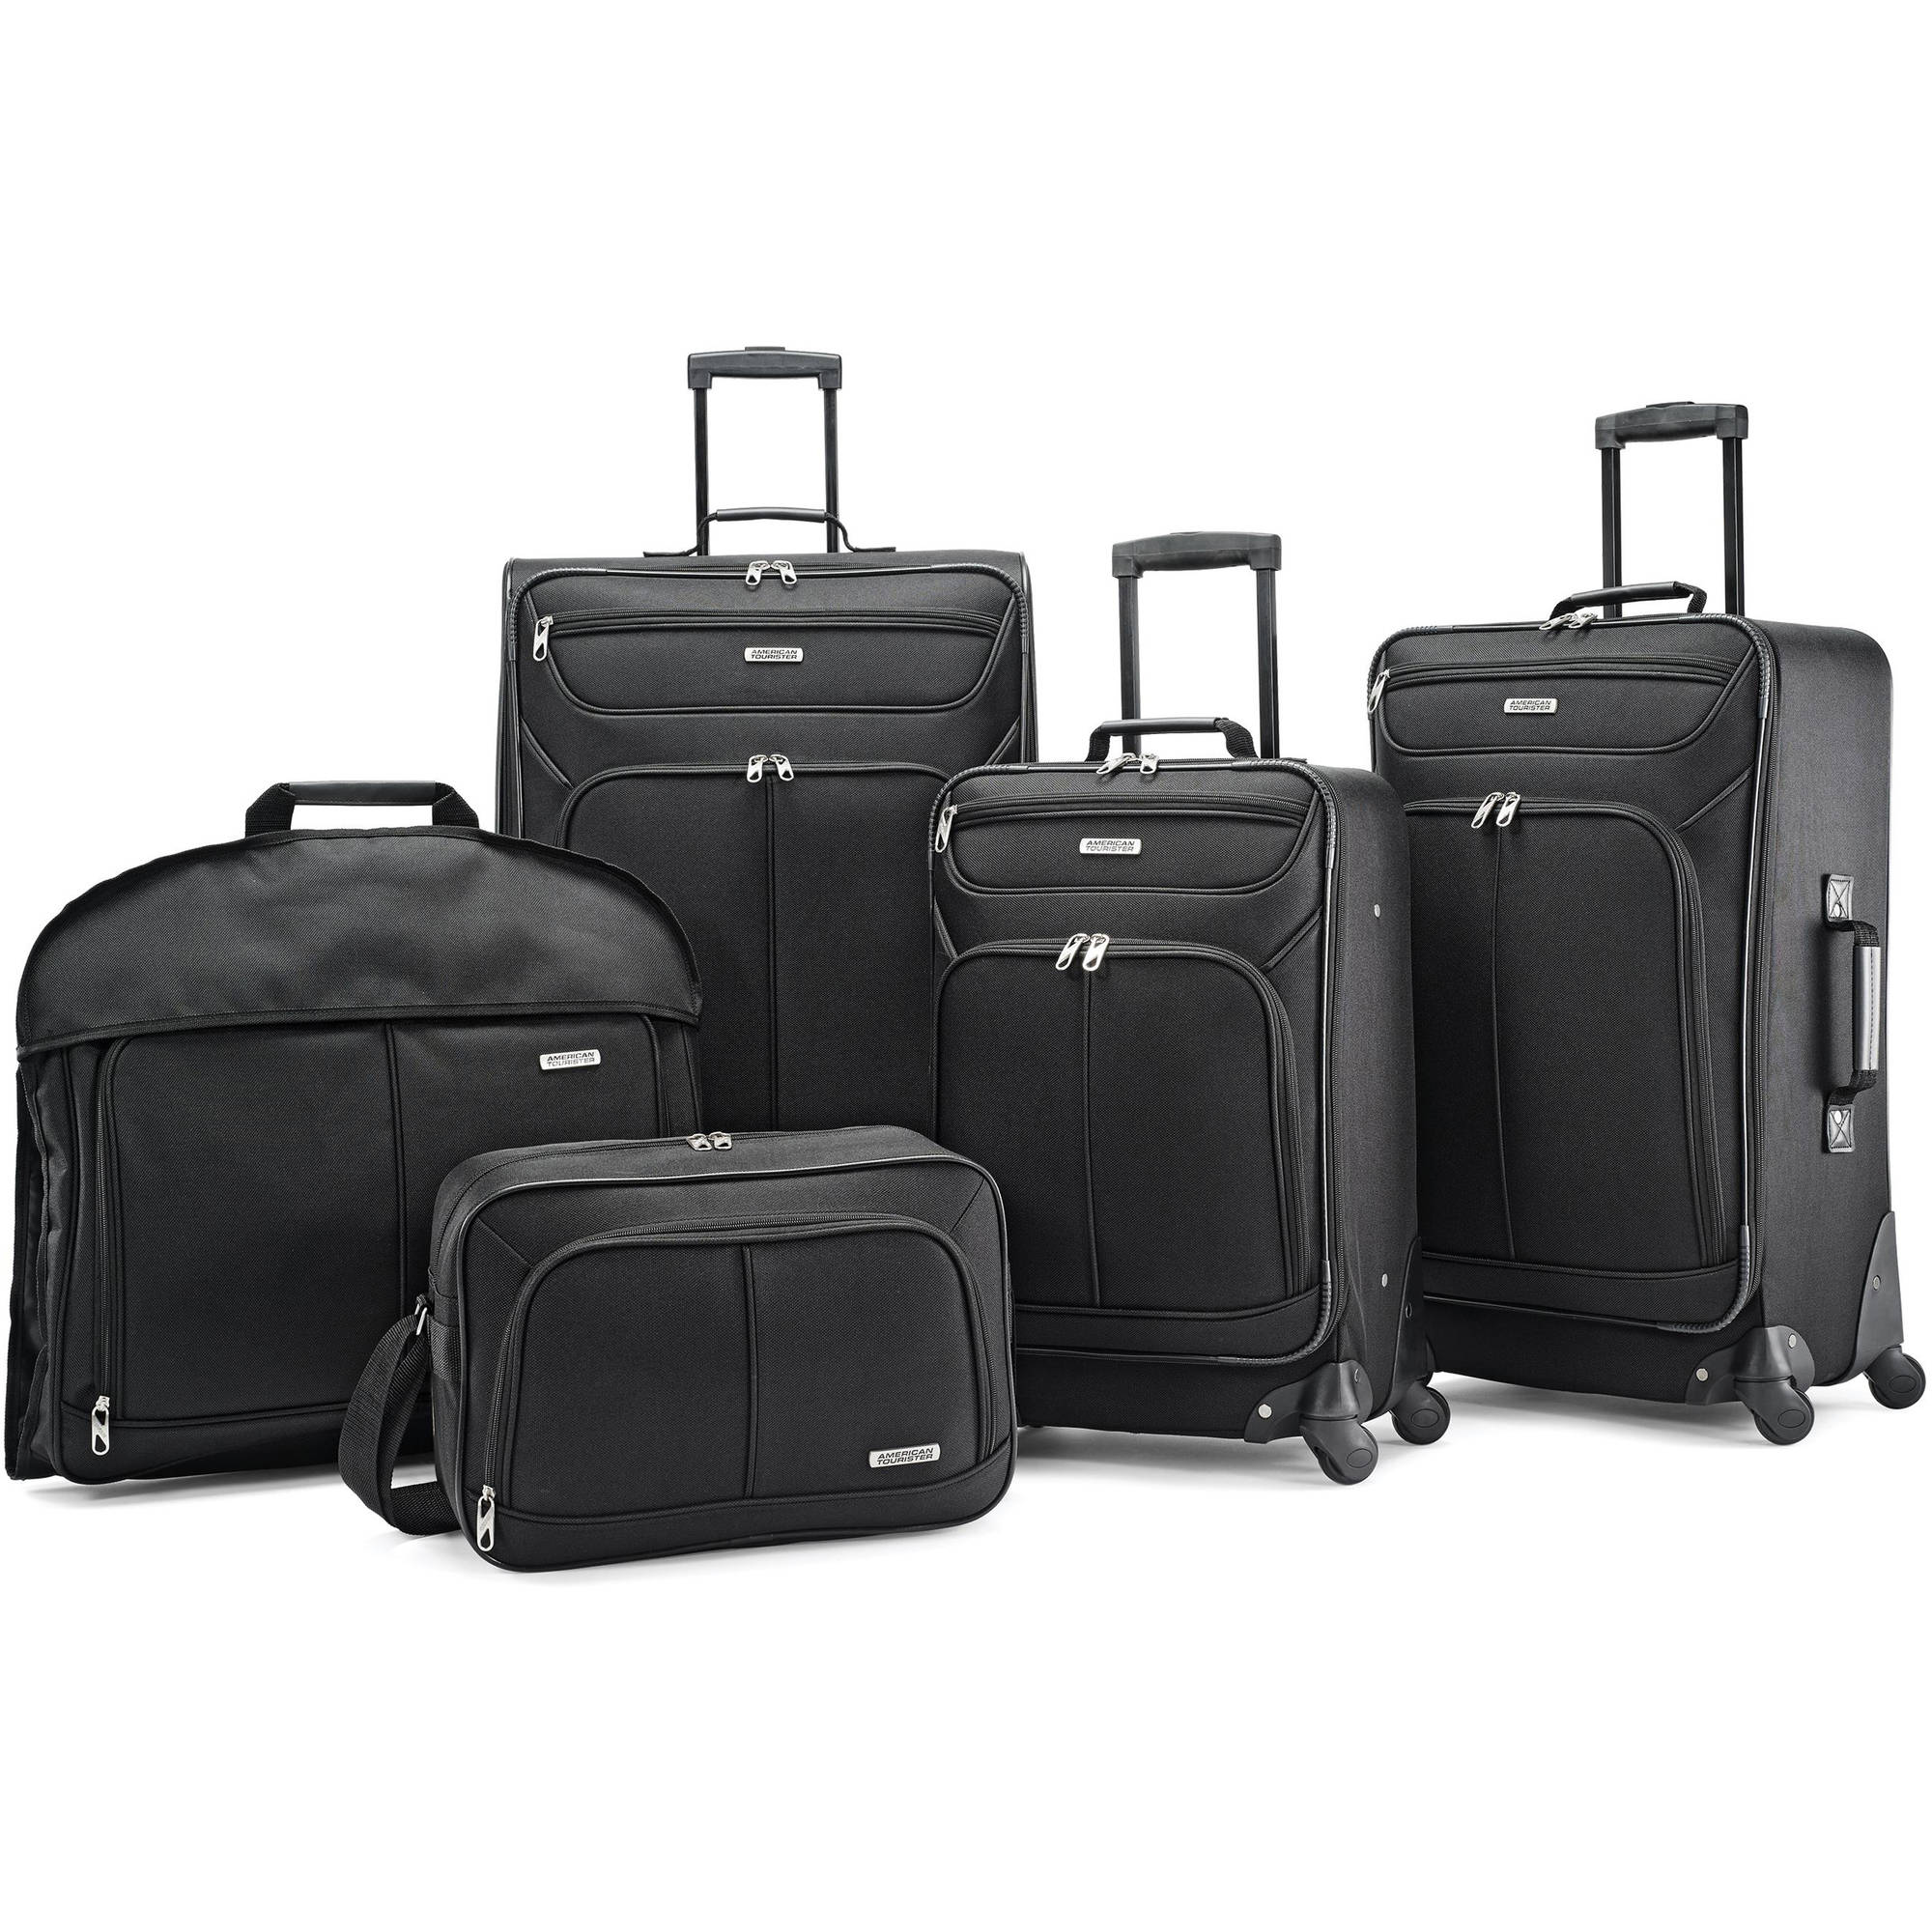 American Tourister - American Tourister 5 Piece Softside Luggage Set $104.99 + Free Shipping